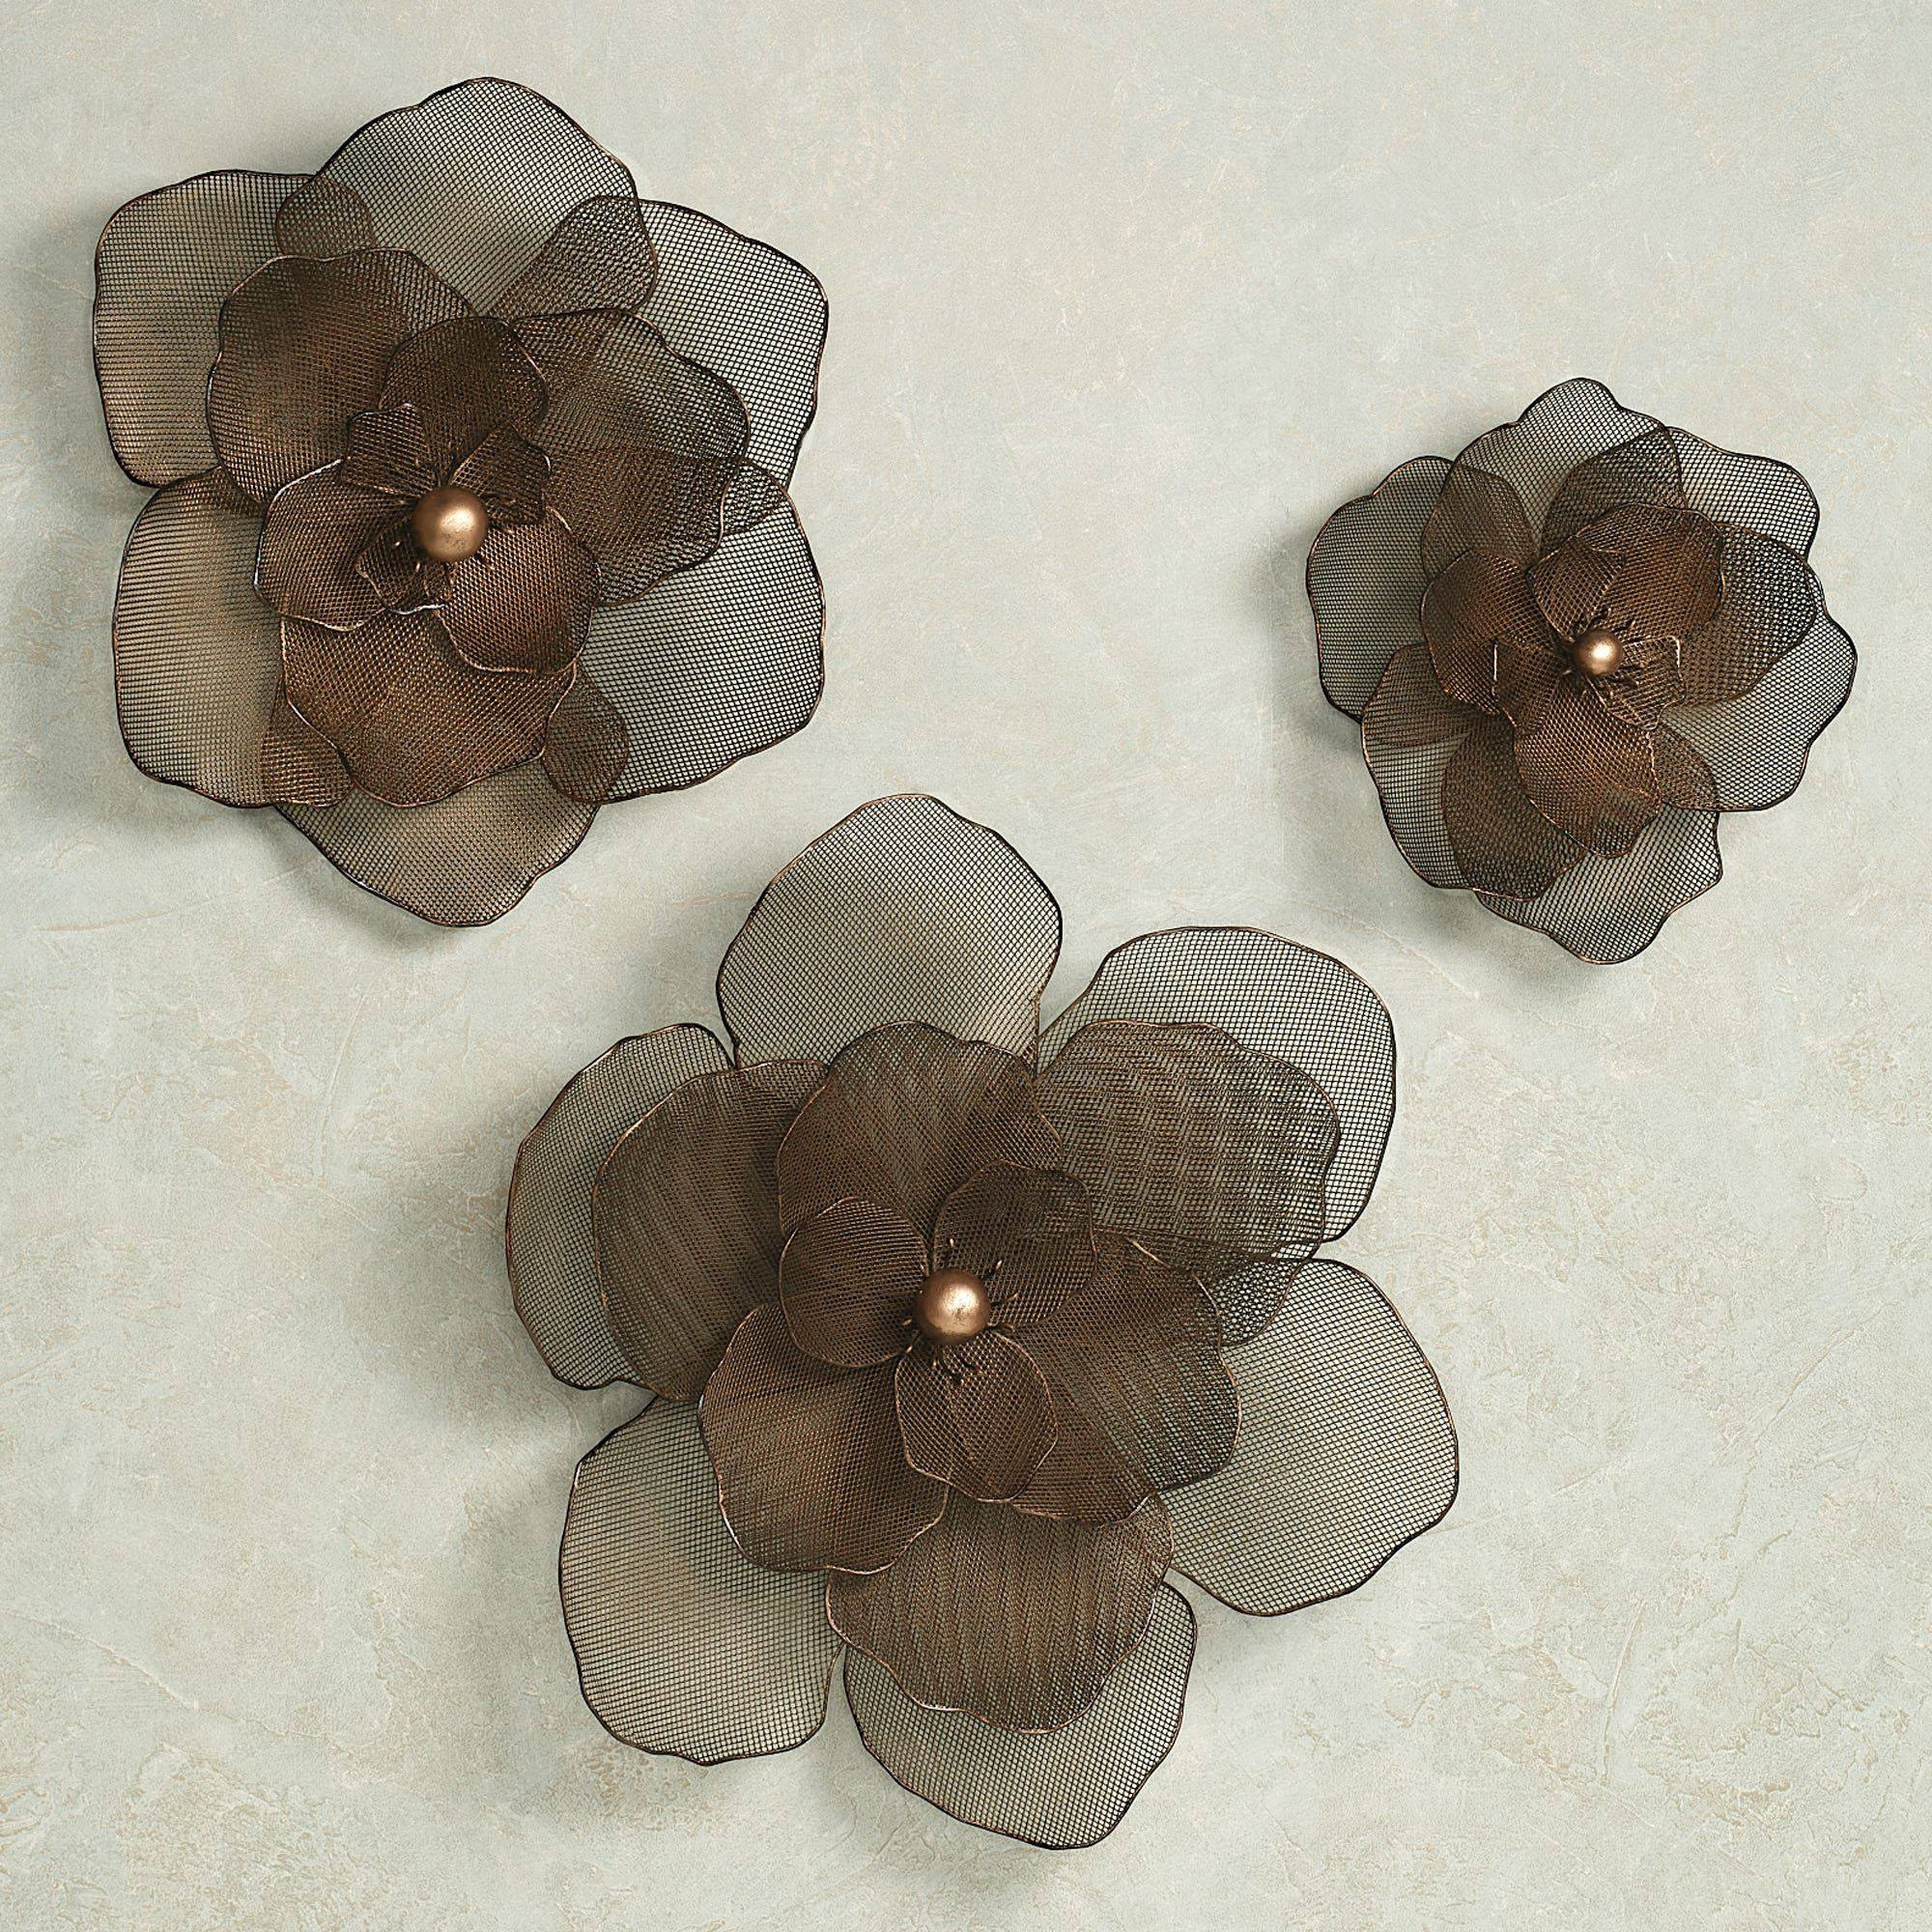 Interesting Metal Wall Art Flowers With Amazon Com – Decoration With Regard To Current Metal Wall Art Flowers (View 6 of 20)